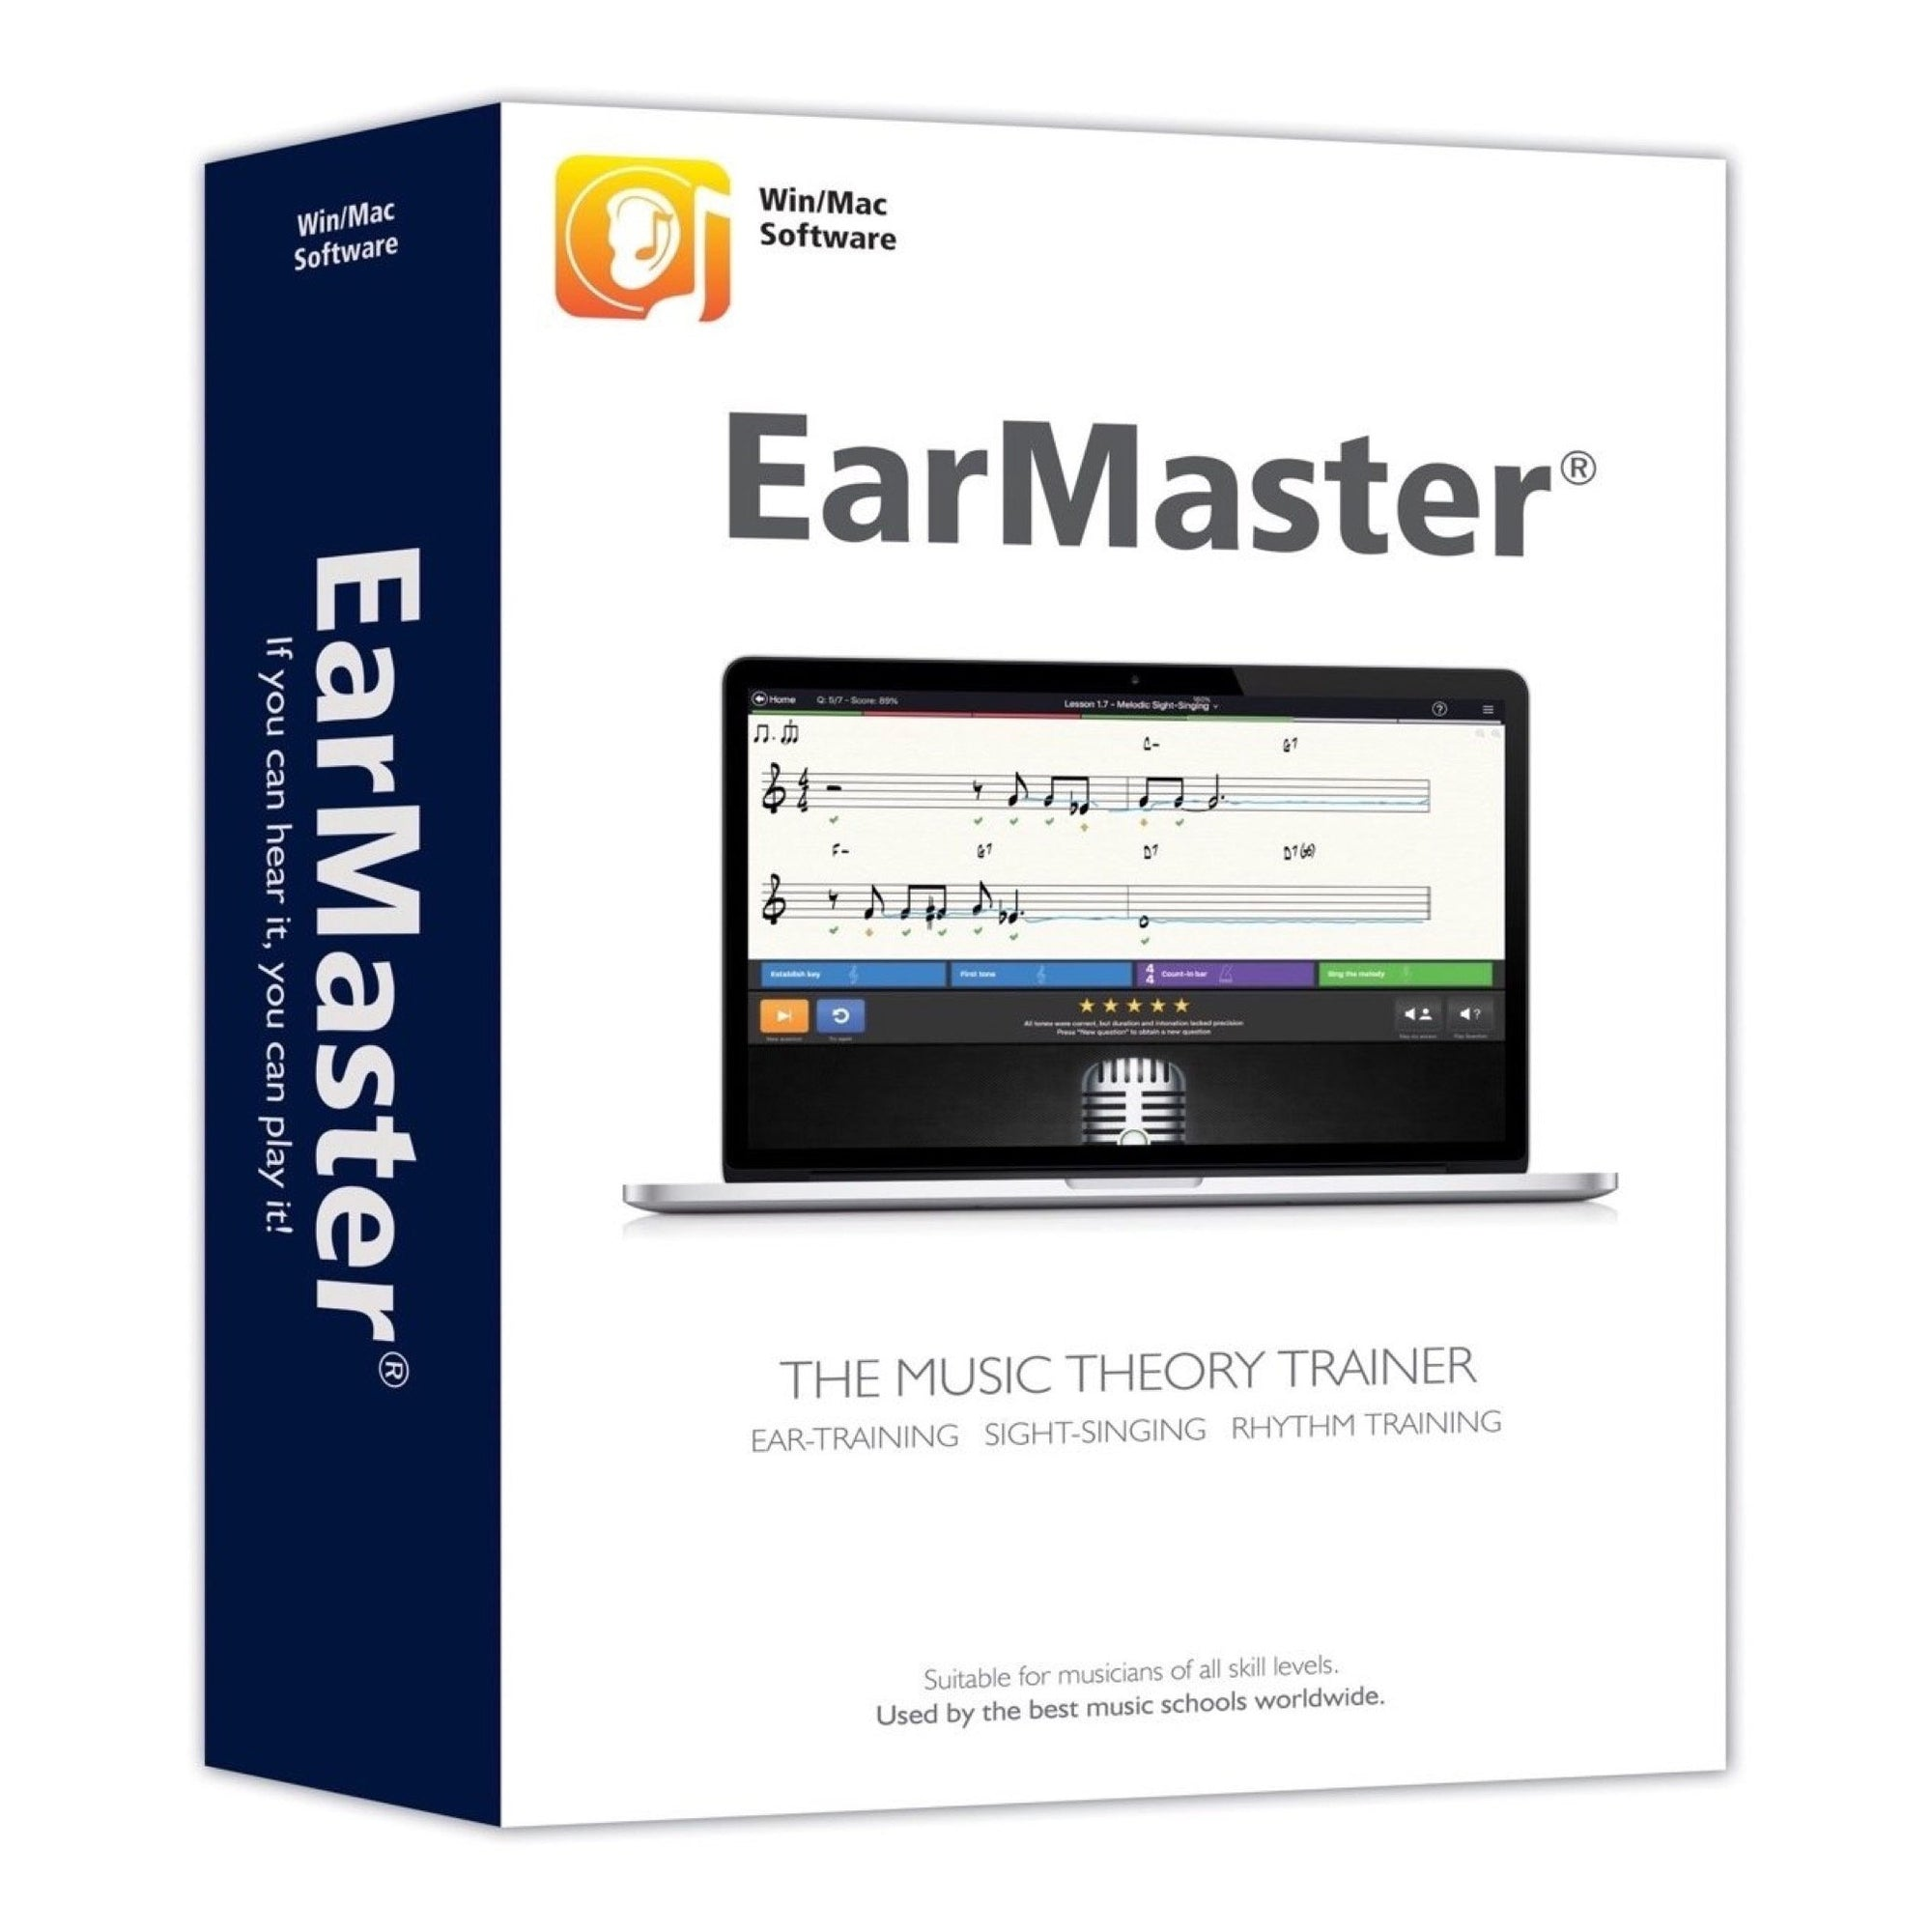 EarMaster Pro 7 Ear Training Software